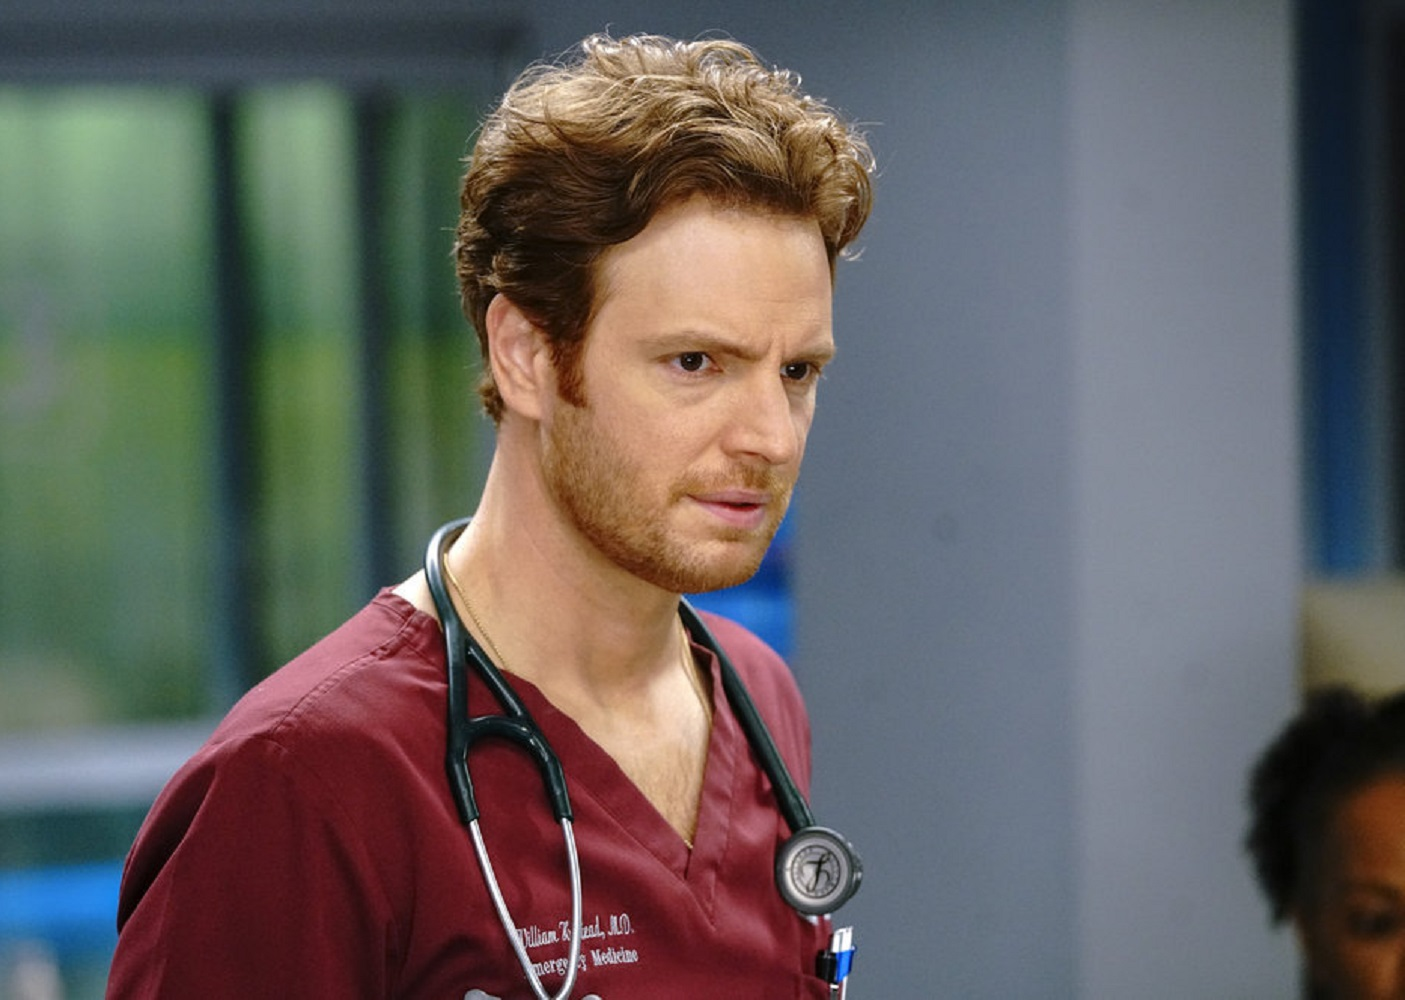 Chicago Med 6x11